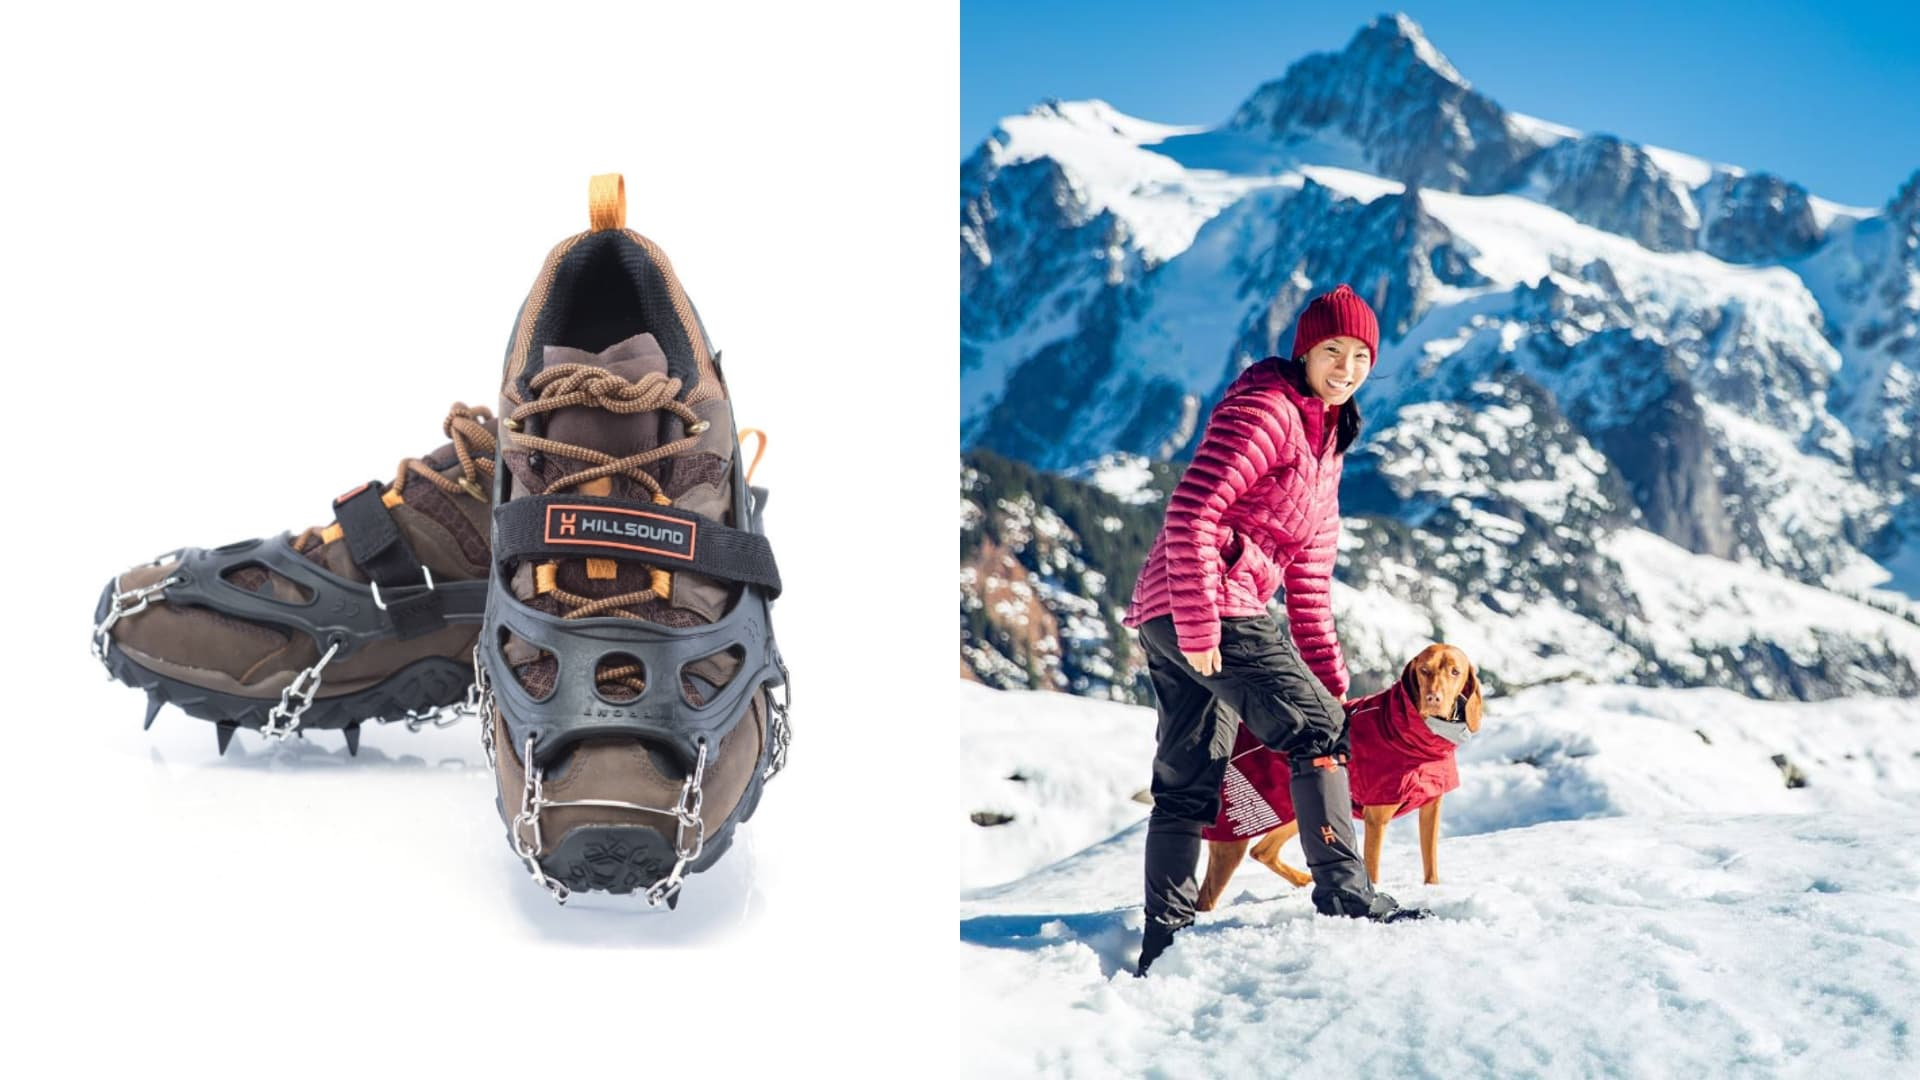 (left) pair of hiking boots with crampons (right) woman in red jacket and dog wearing red coat standing in snow with jagged peaks in the background